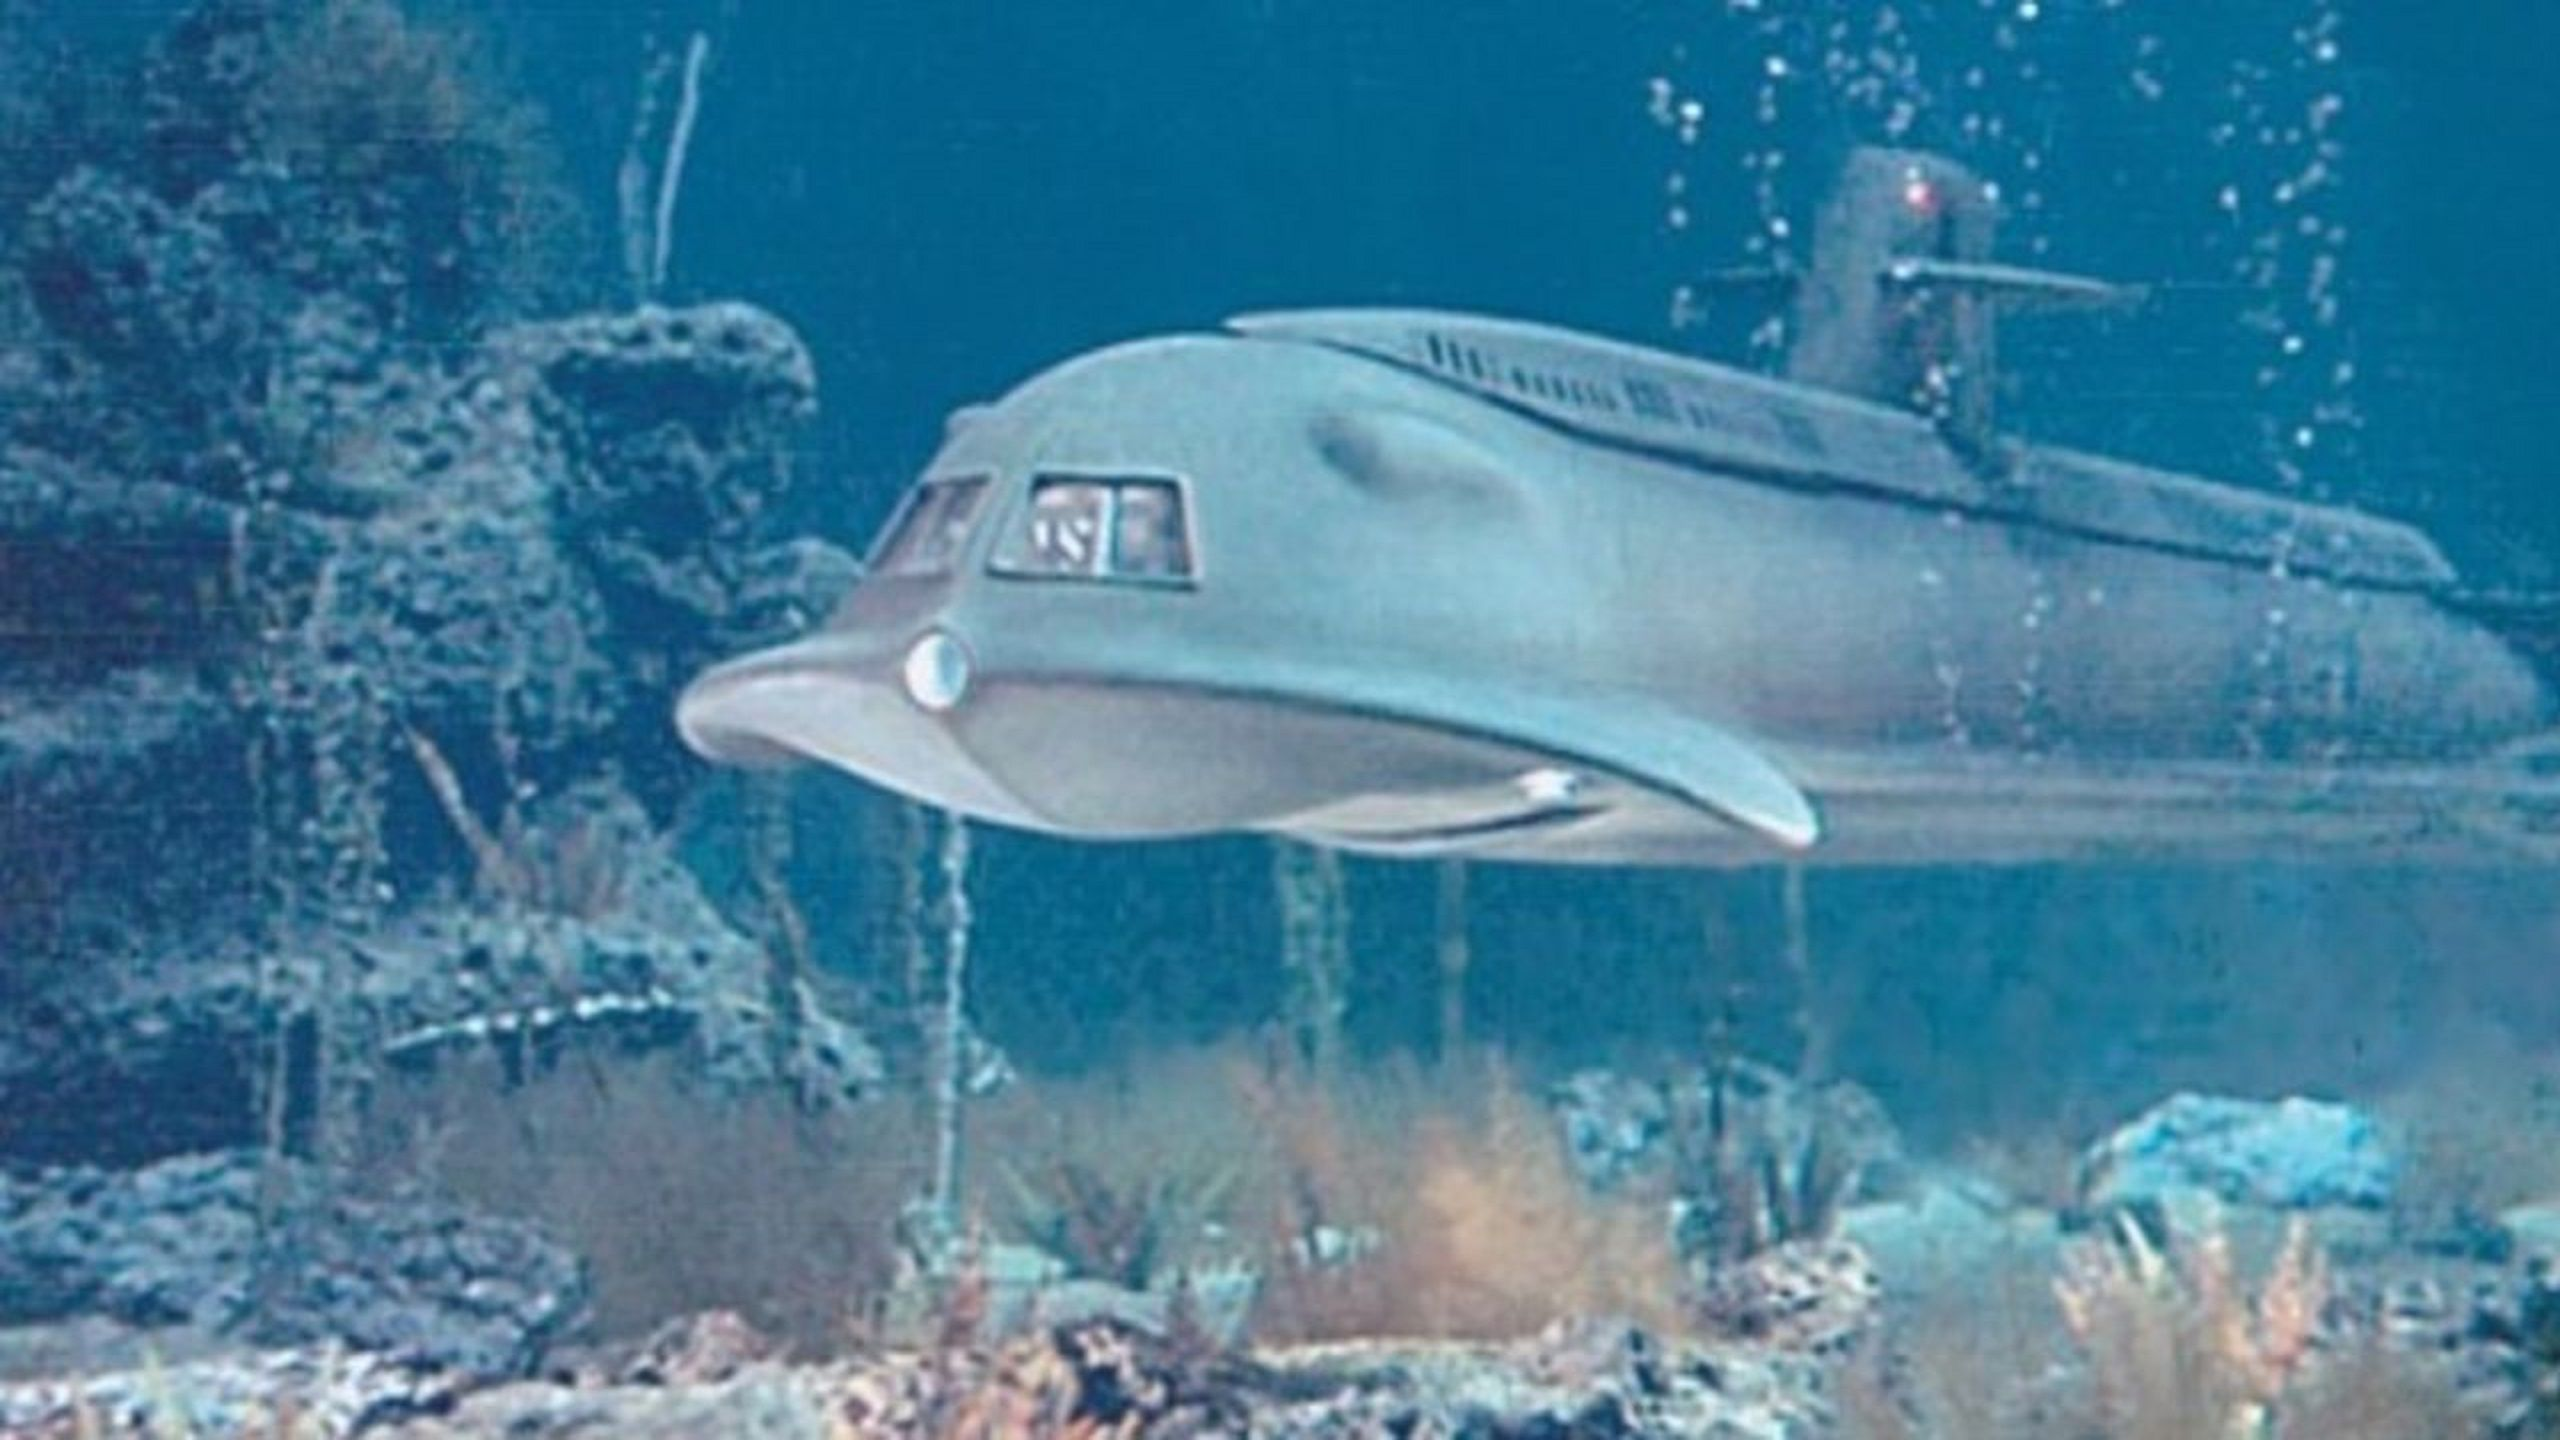 Voyage to the Bottom of the Sea 1961 futuristic submarine